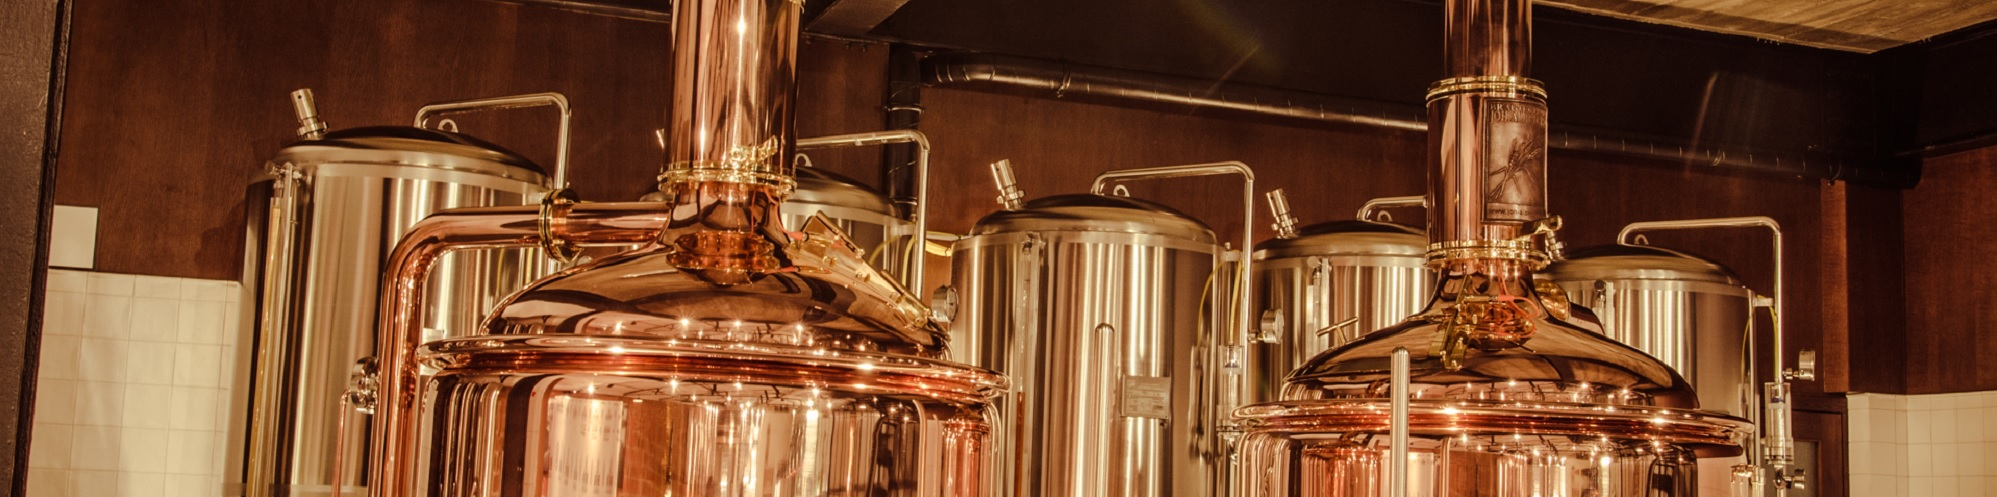 JBT_header_brewery